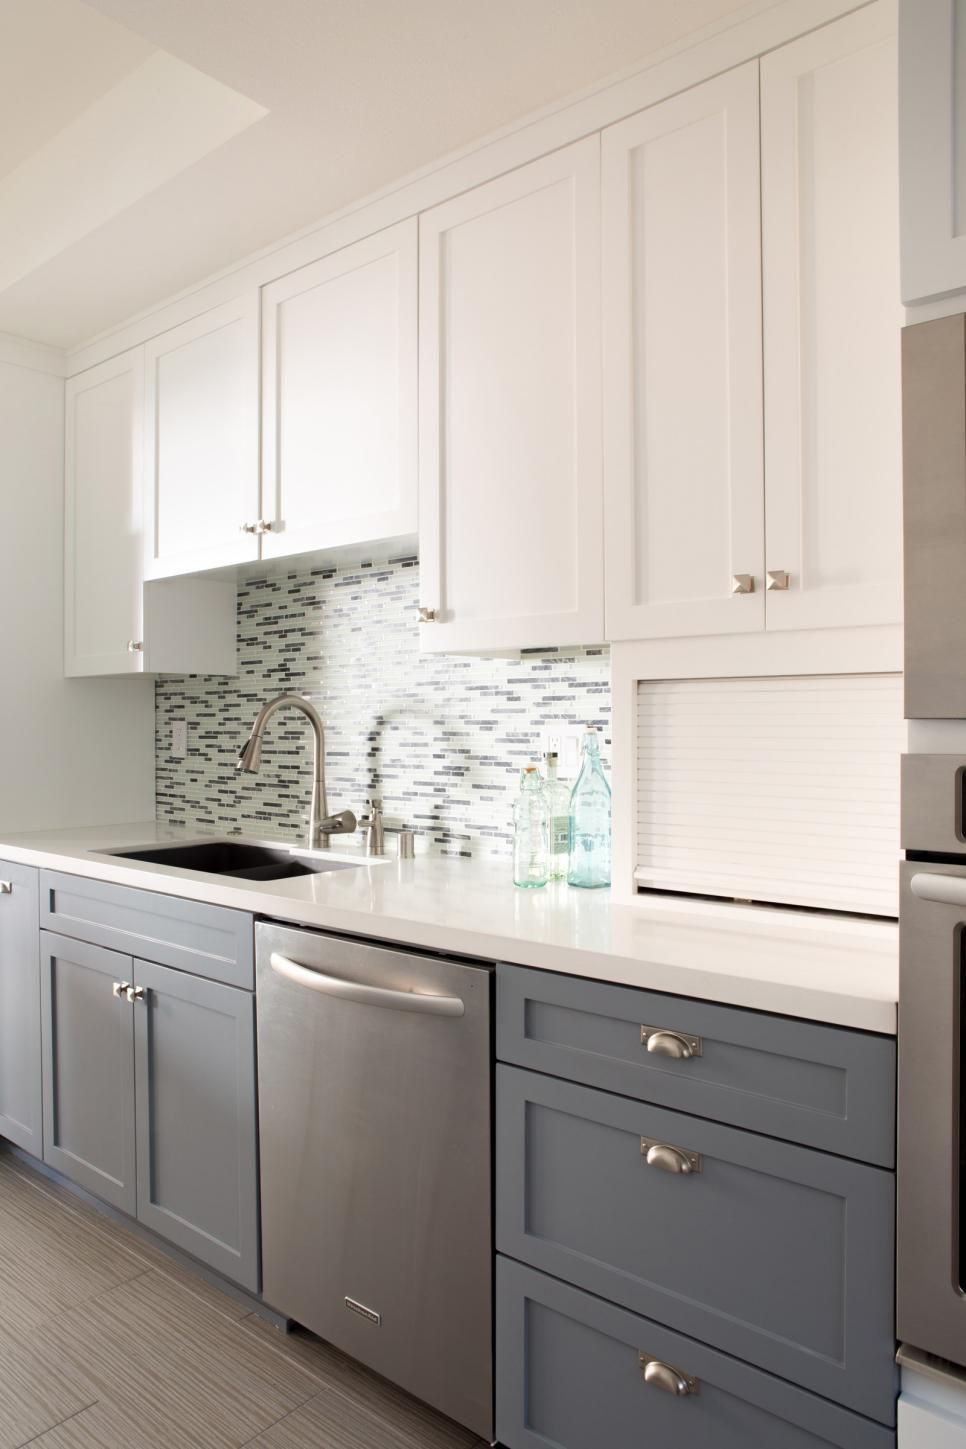 Light Plays Off The Glass Tile Backsplash And Stainless Steel Dishwasher And Adds A Sleek T Tall Kitchen Cabinets Outdoor Kitchen Cabinets New Kitchen Cabinets